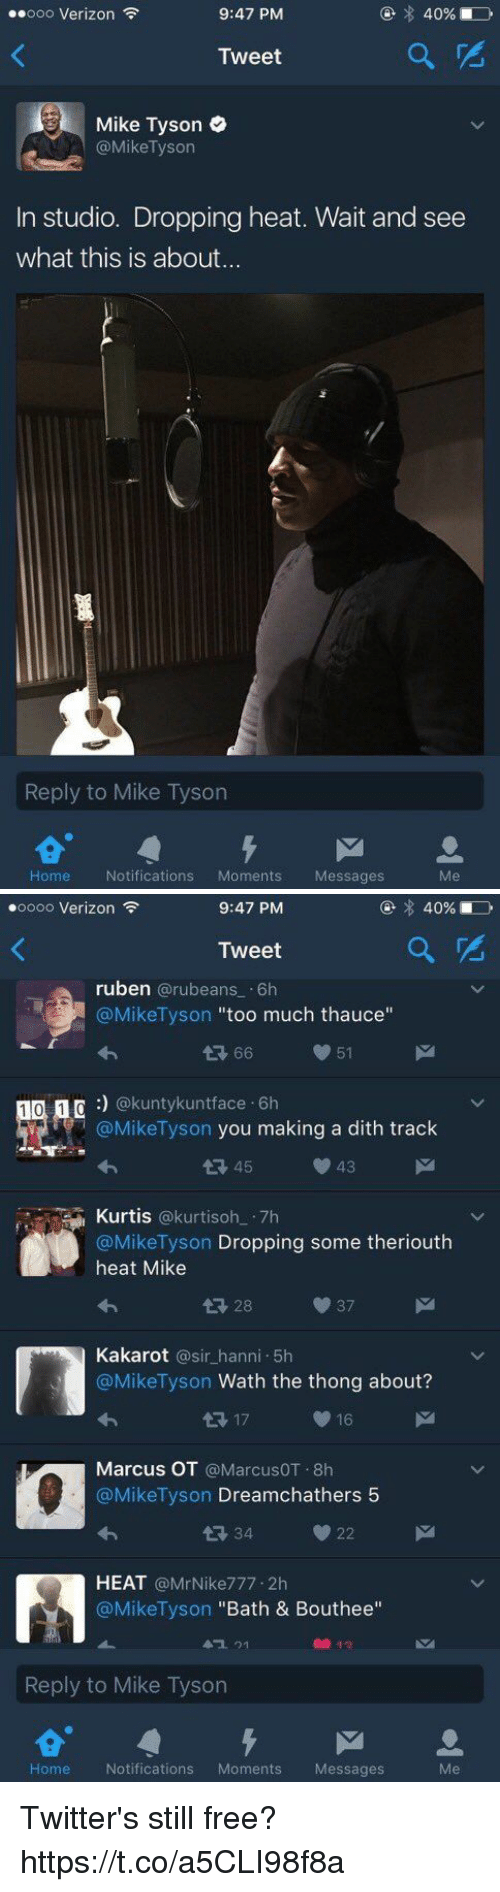 """Blackpeopletwitter, Mike Tyson, and Too Much: ..ooo Verizon  9:47 PM  40%  Tweet  Mike Tyson  @Mike Tyson  In studio. Dropping heat. Wait and see  what this is about...  Reply to Mike Tyson  M  Home  Notifications  Moments Messages   oooo Verizon  9:47 PM  Tweet  ruben  @rubeans 6h  @Mike Tyson  too much thauce  66  51  1 0 1  n @kunty kunt face 6h  @Mike Tyson you making a dith track  43  45  Kurtis  @kurti soh 7h  @Mike Tyson  Dropping some theriouth  heat Mike  Kakarot  a sir hanni 5h  @Mike Tyson Wath the thong about?  16  17  Marcus OT  @MarcusOT.8h  @Mike Tyson  Dreamchathers 5  22  HEAT  @Mr Nike777.2h  @Mike Tyson Bath & Bouthee""""  Reply to Mike Tyson  M  Home Notifications  Moments  Messages Twitter's still free? https://t.co/a5CLI98f8a"""